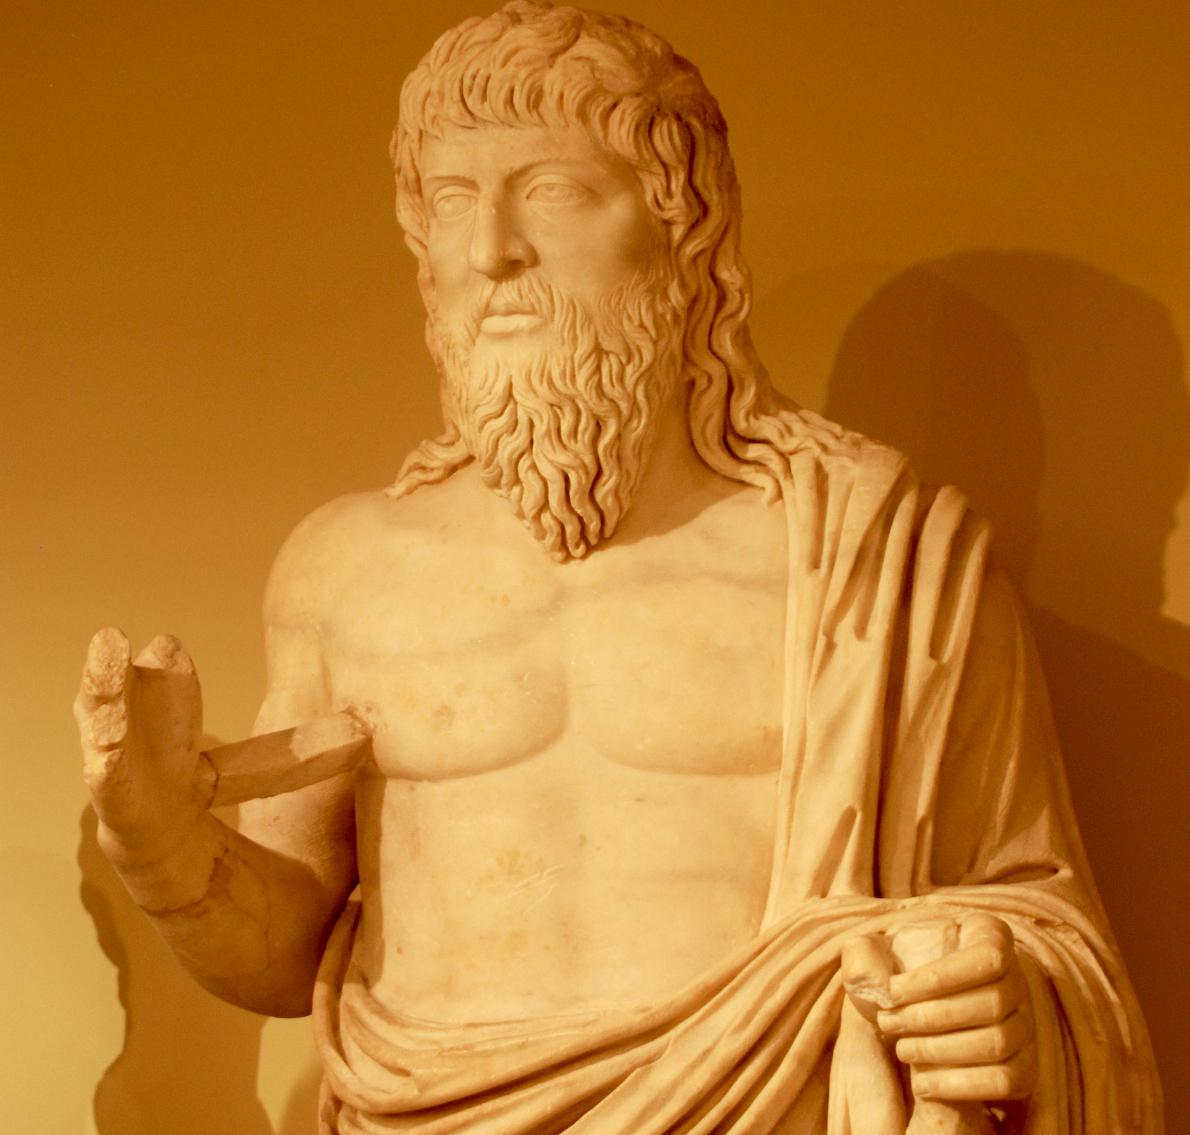 The_Philosopher_Apollonius_of_Tyana_-_Archaeological_Museum_of_Herakleion